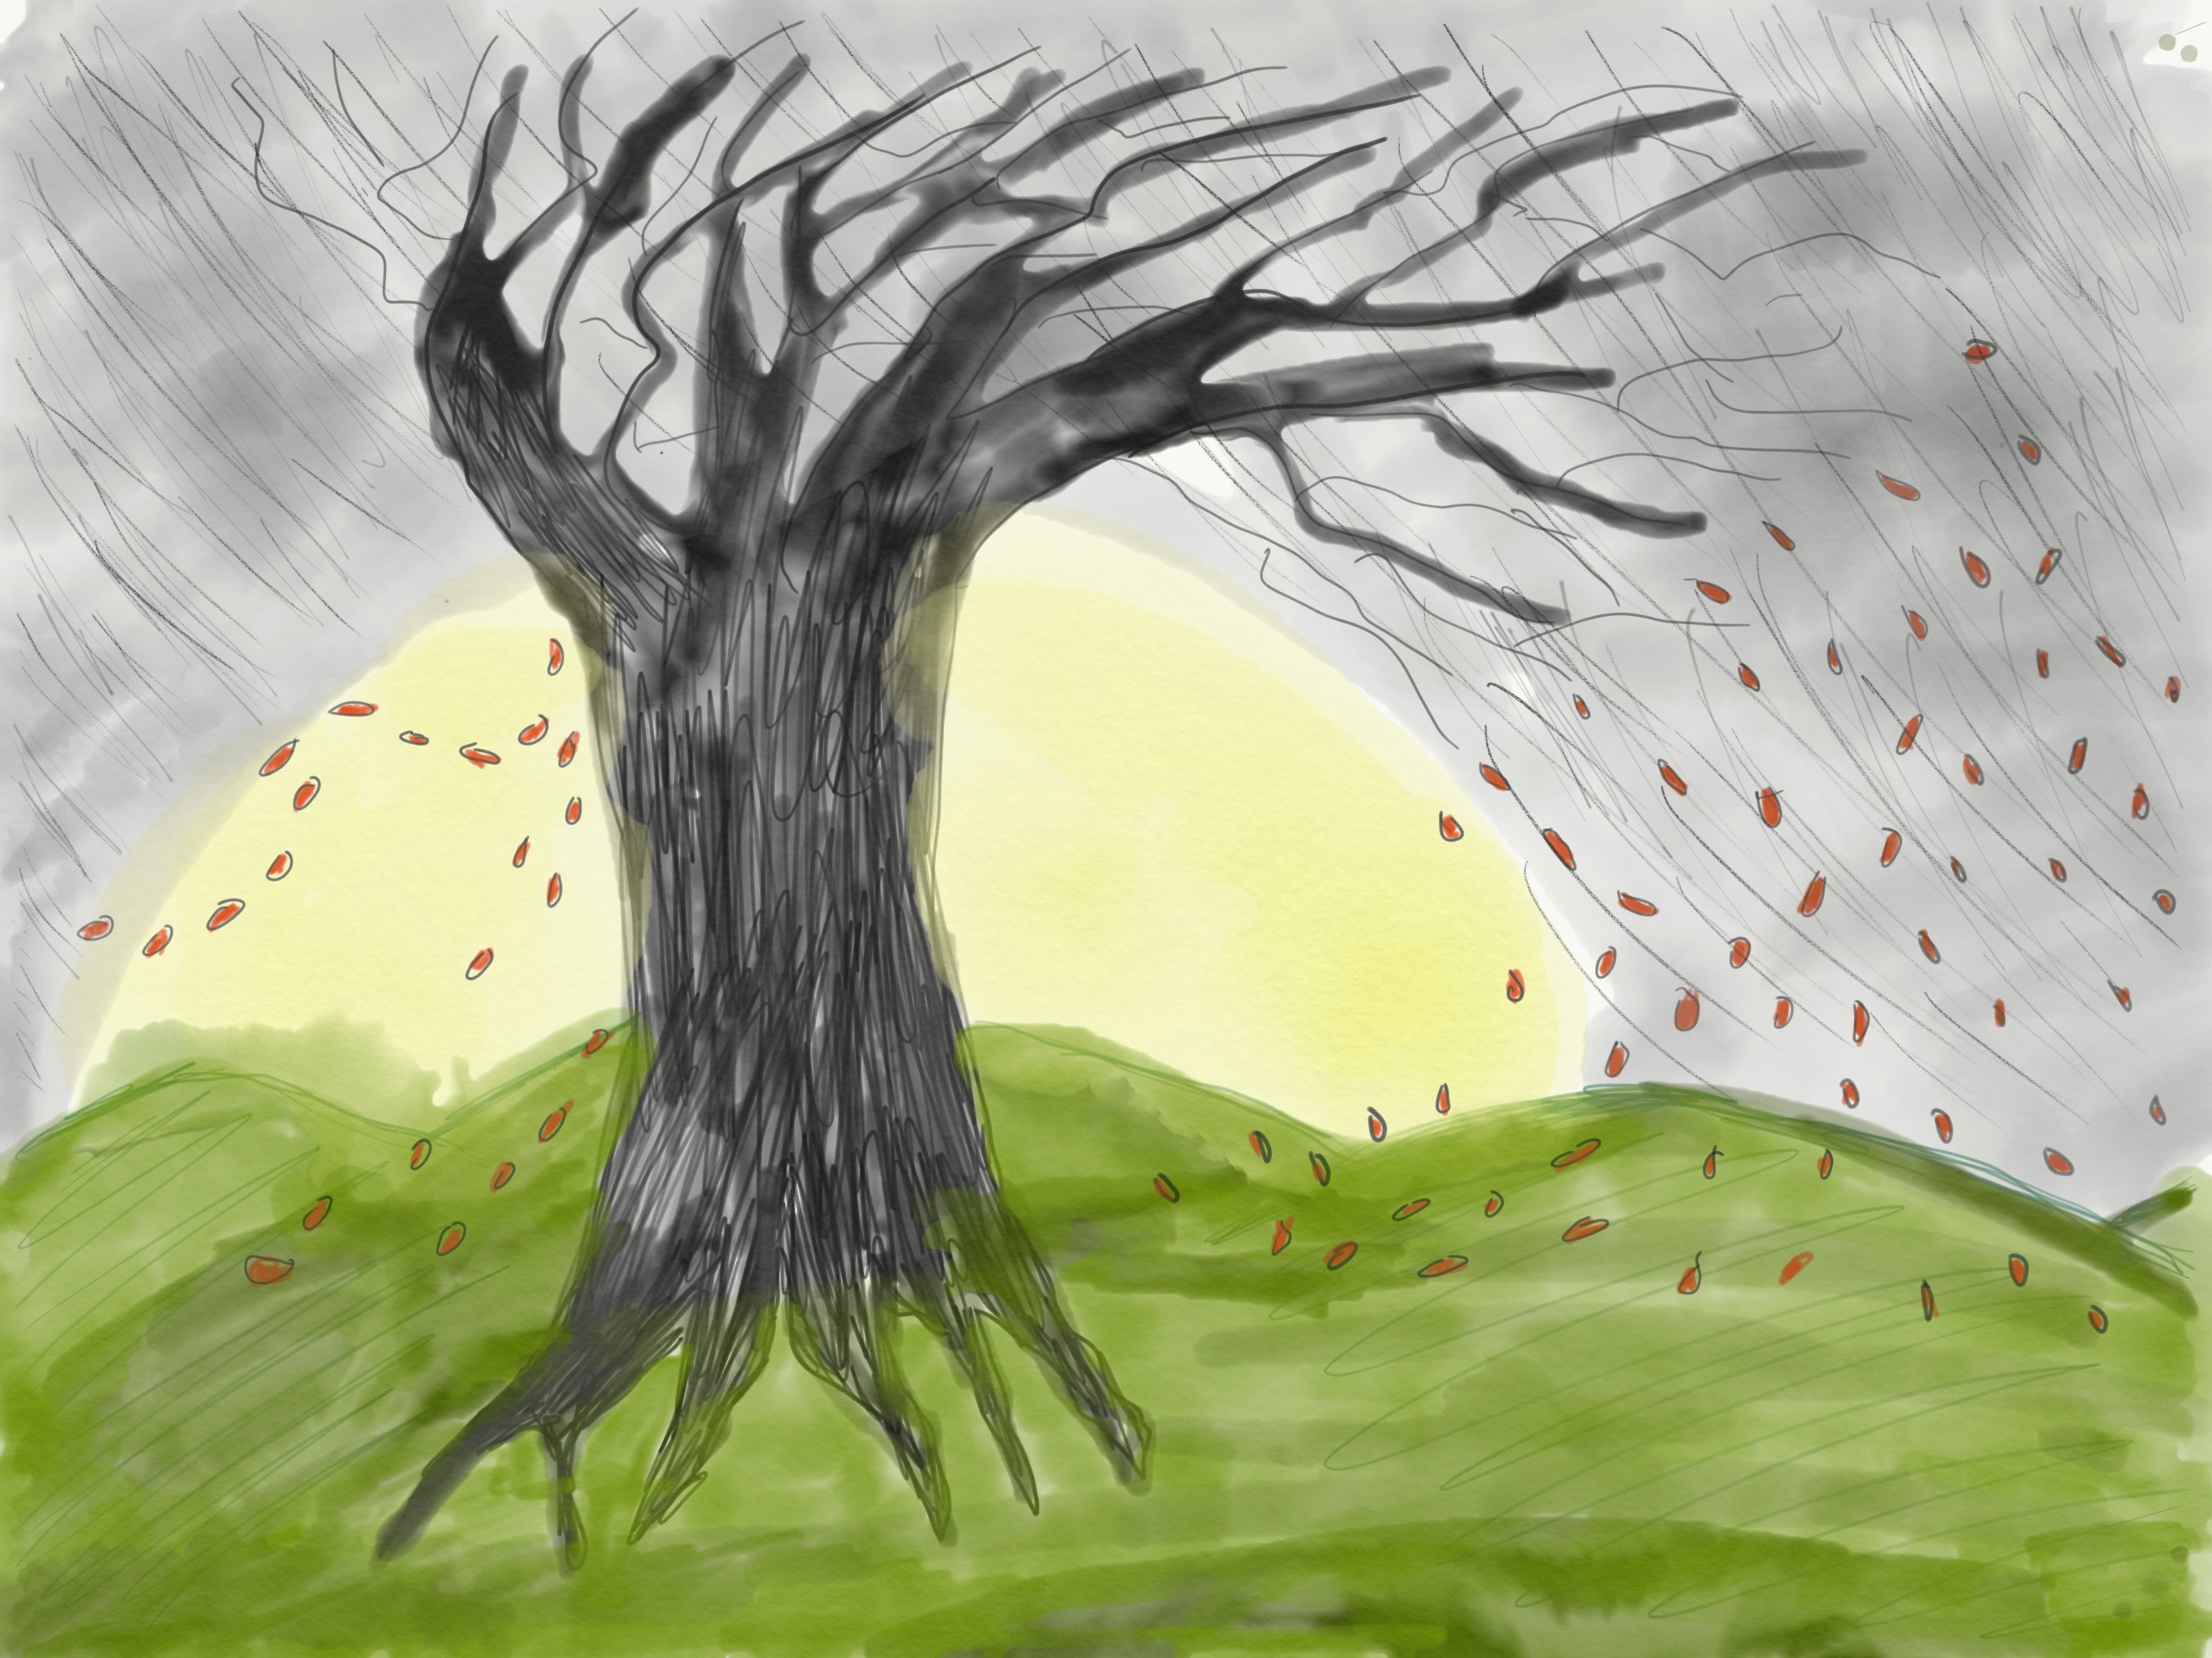 Drawing of a tree during a storm